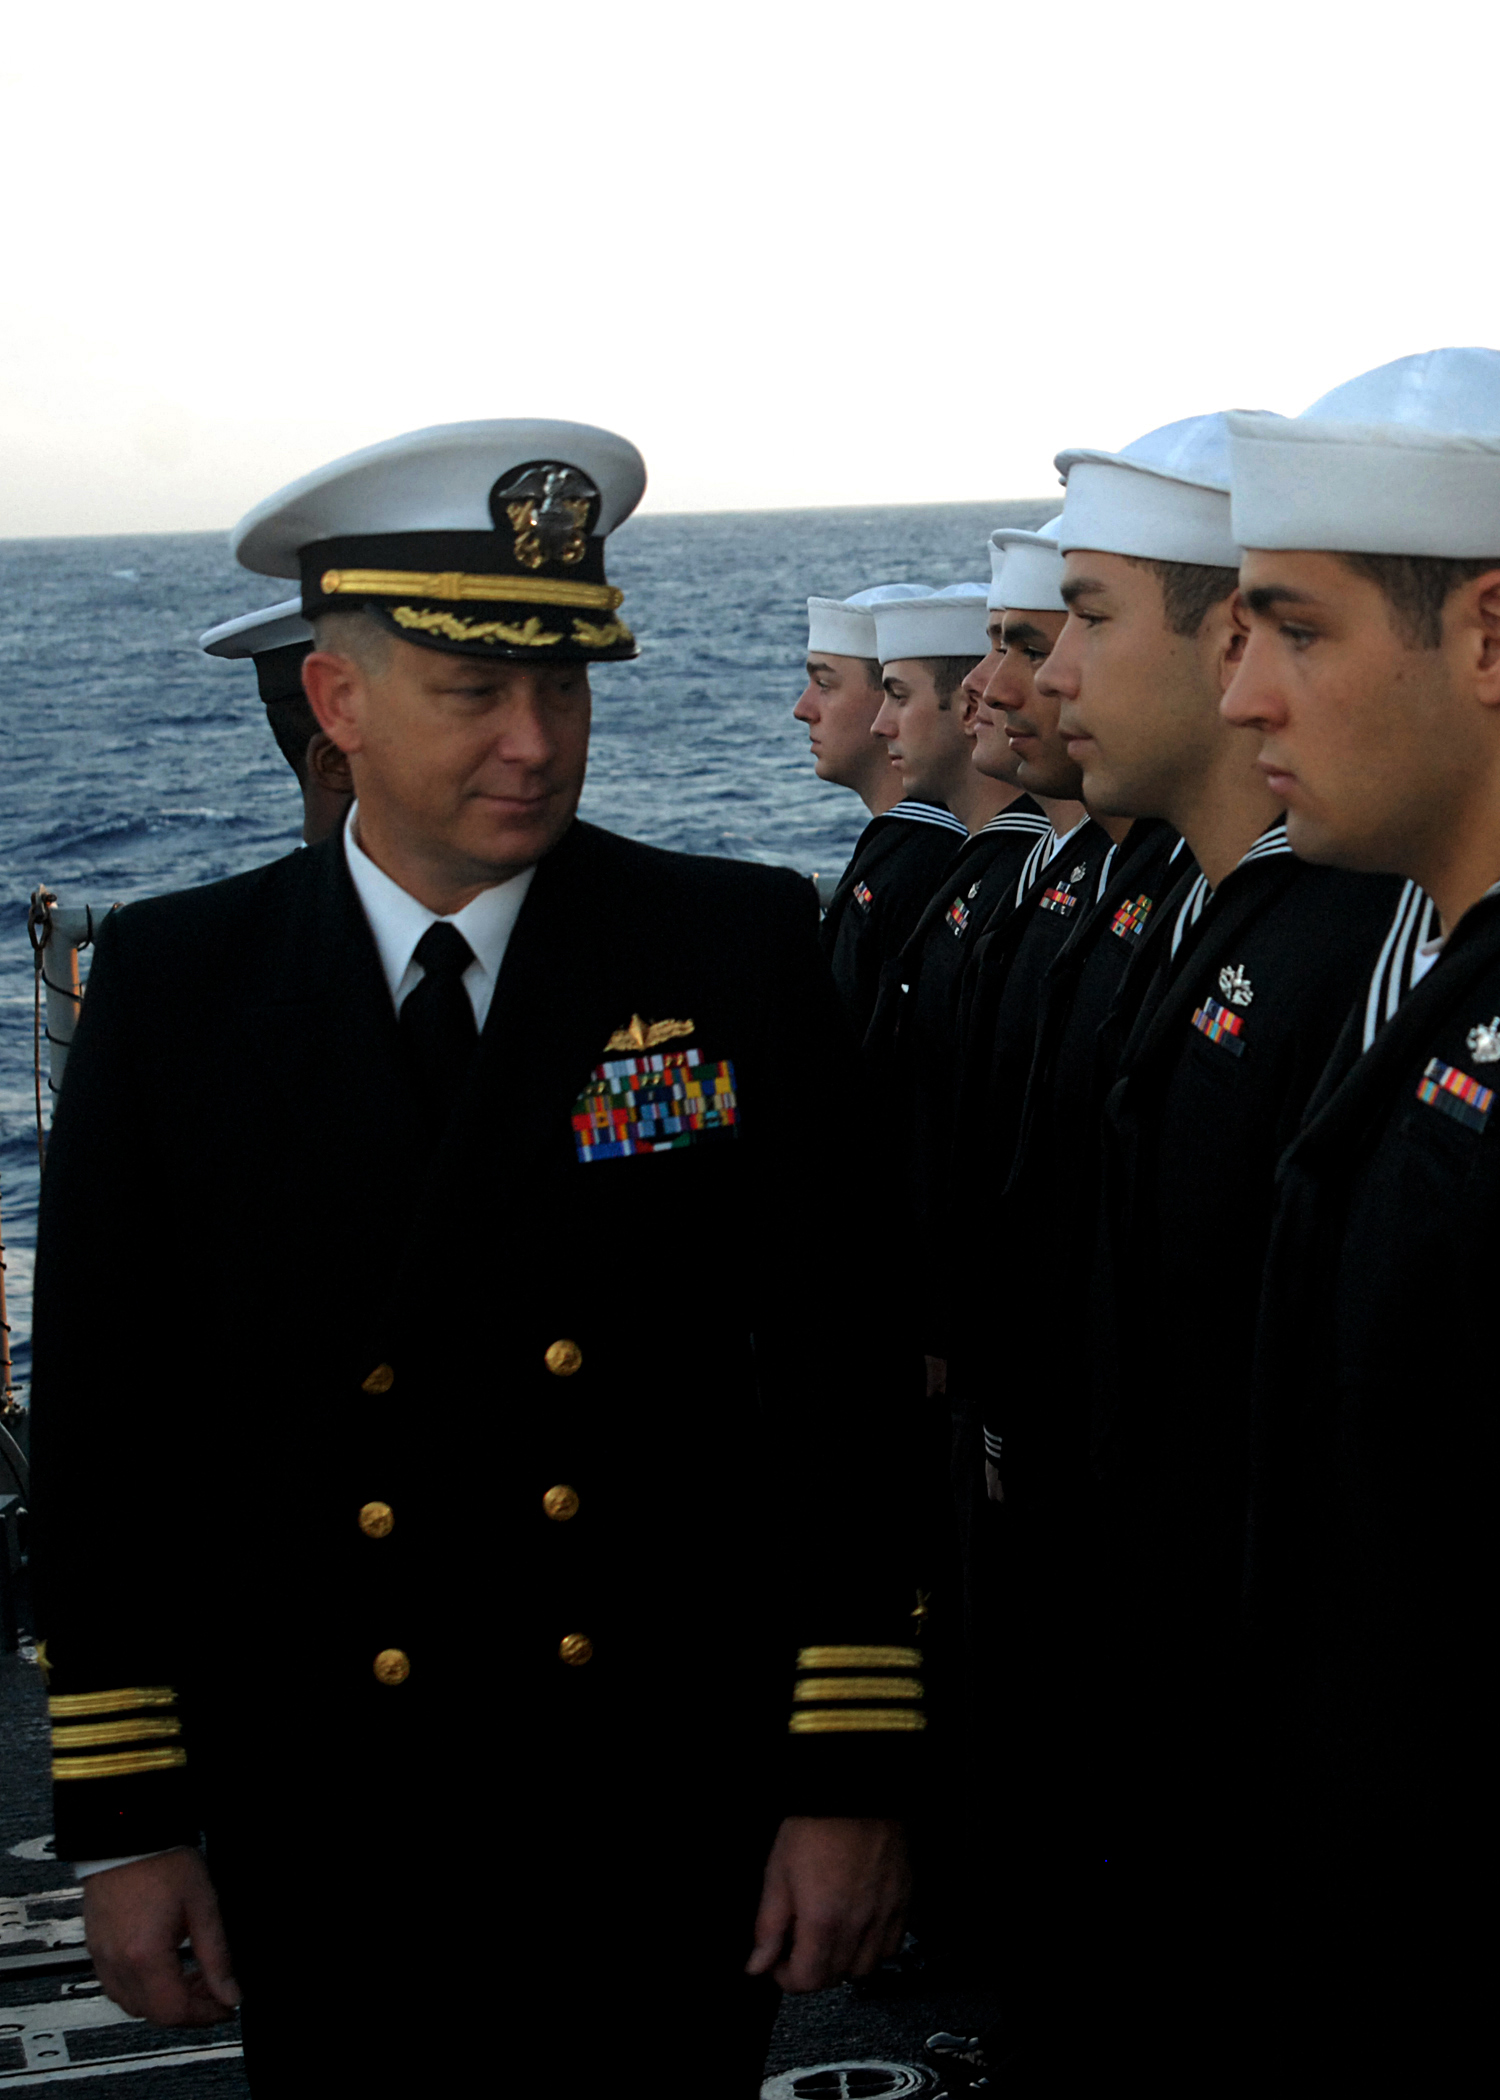 ... uniforms of Sailors during a uniform inspection on the flight deck